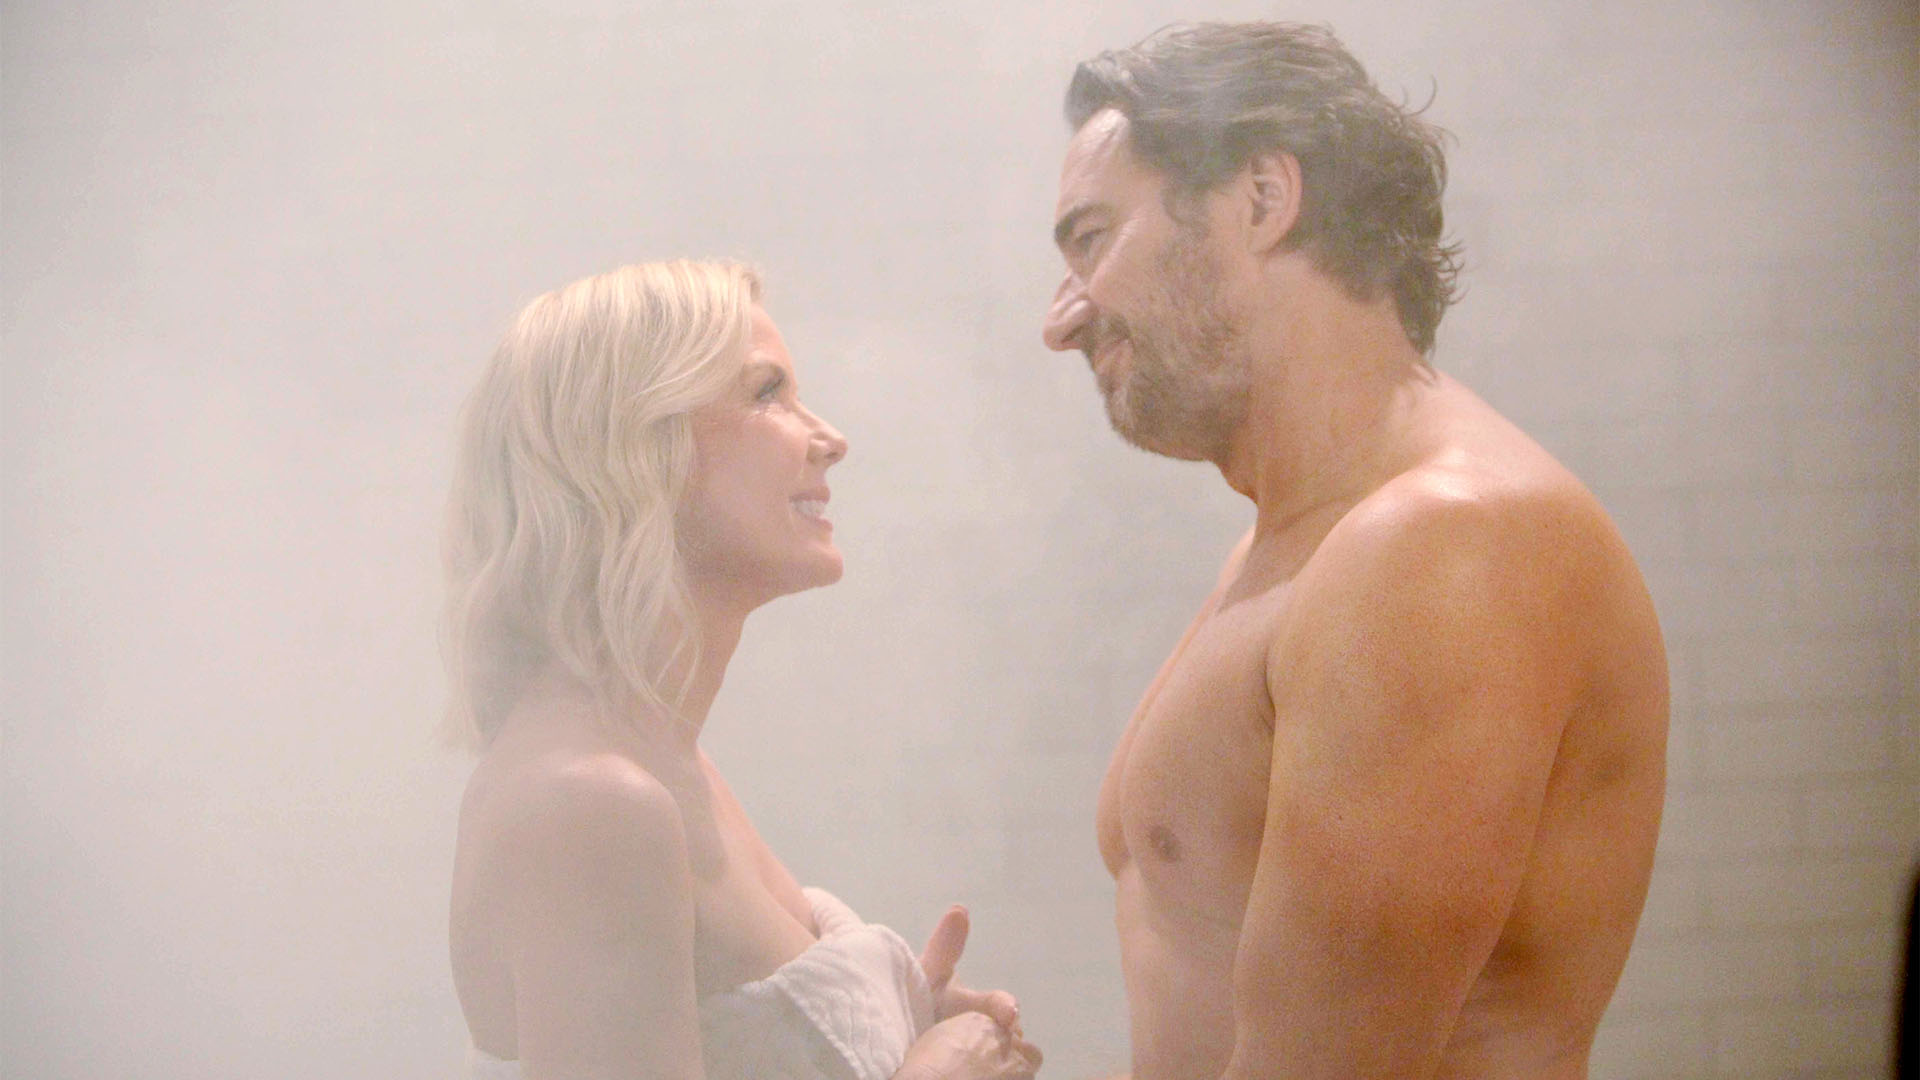 Determined to win her back, Ridge sets up a steamy surprise for Brooke.